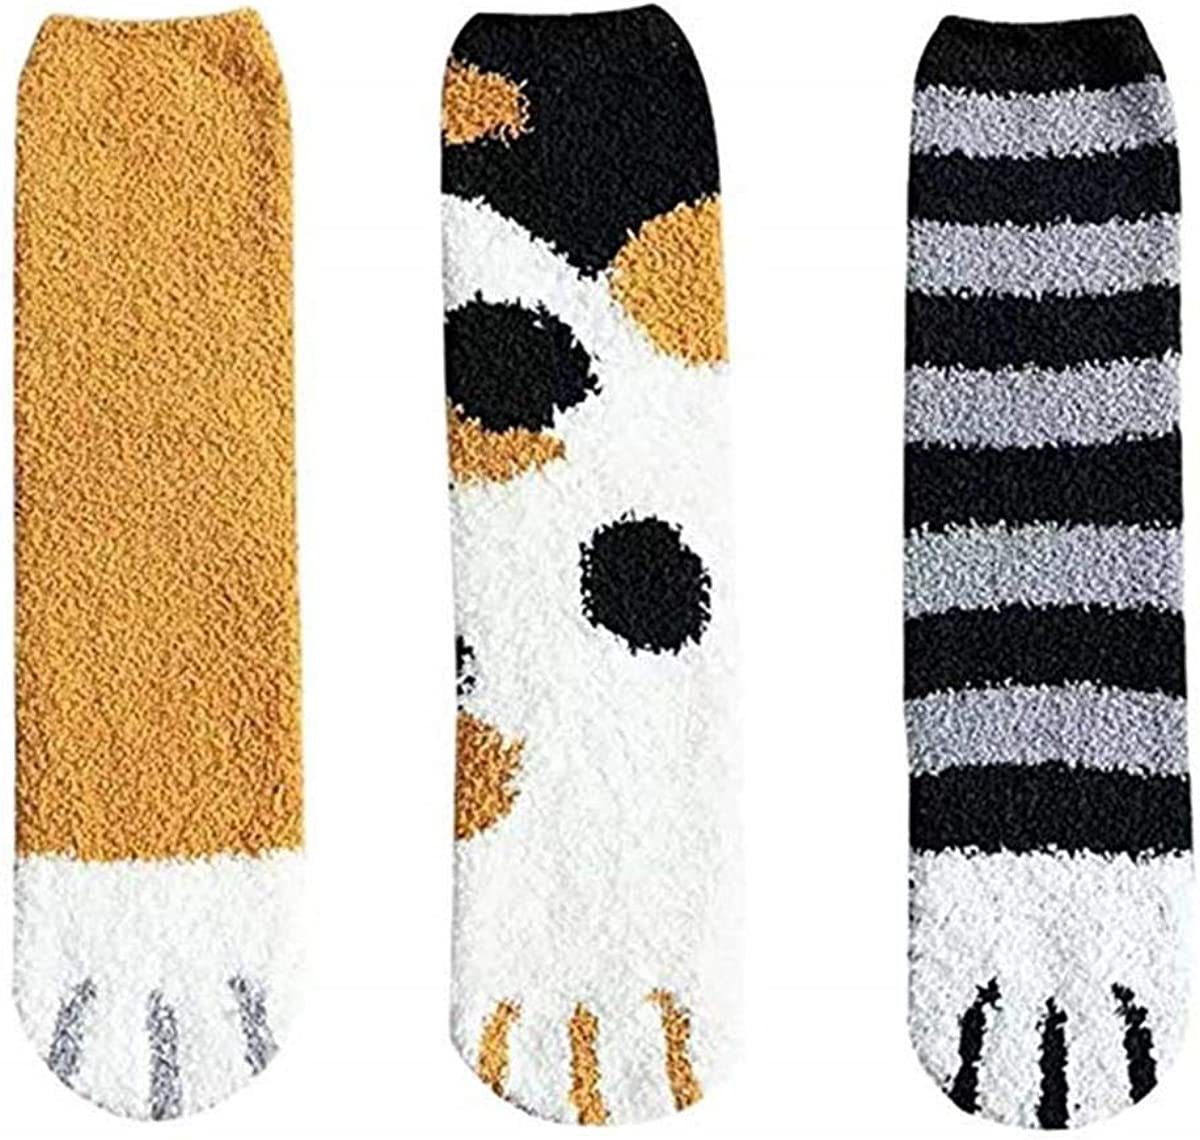 6 Pack Cute Cat Claw Design Plush Cozy Slipper Sock for Womens Winter Indoor 6 Pack